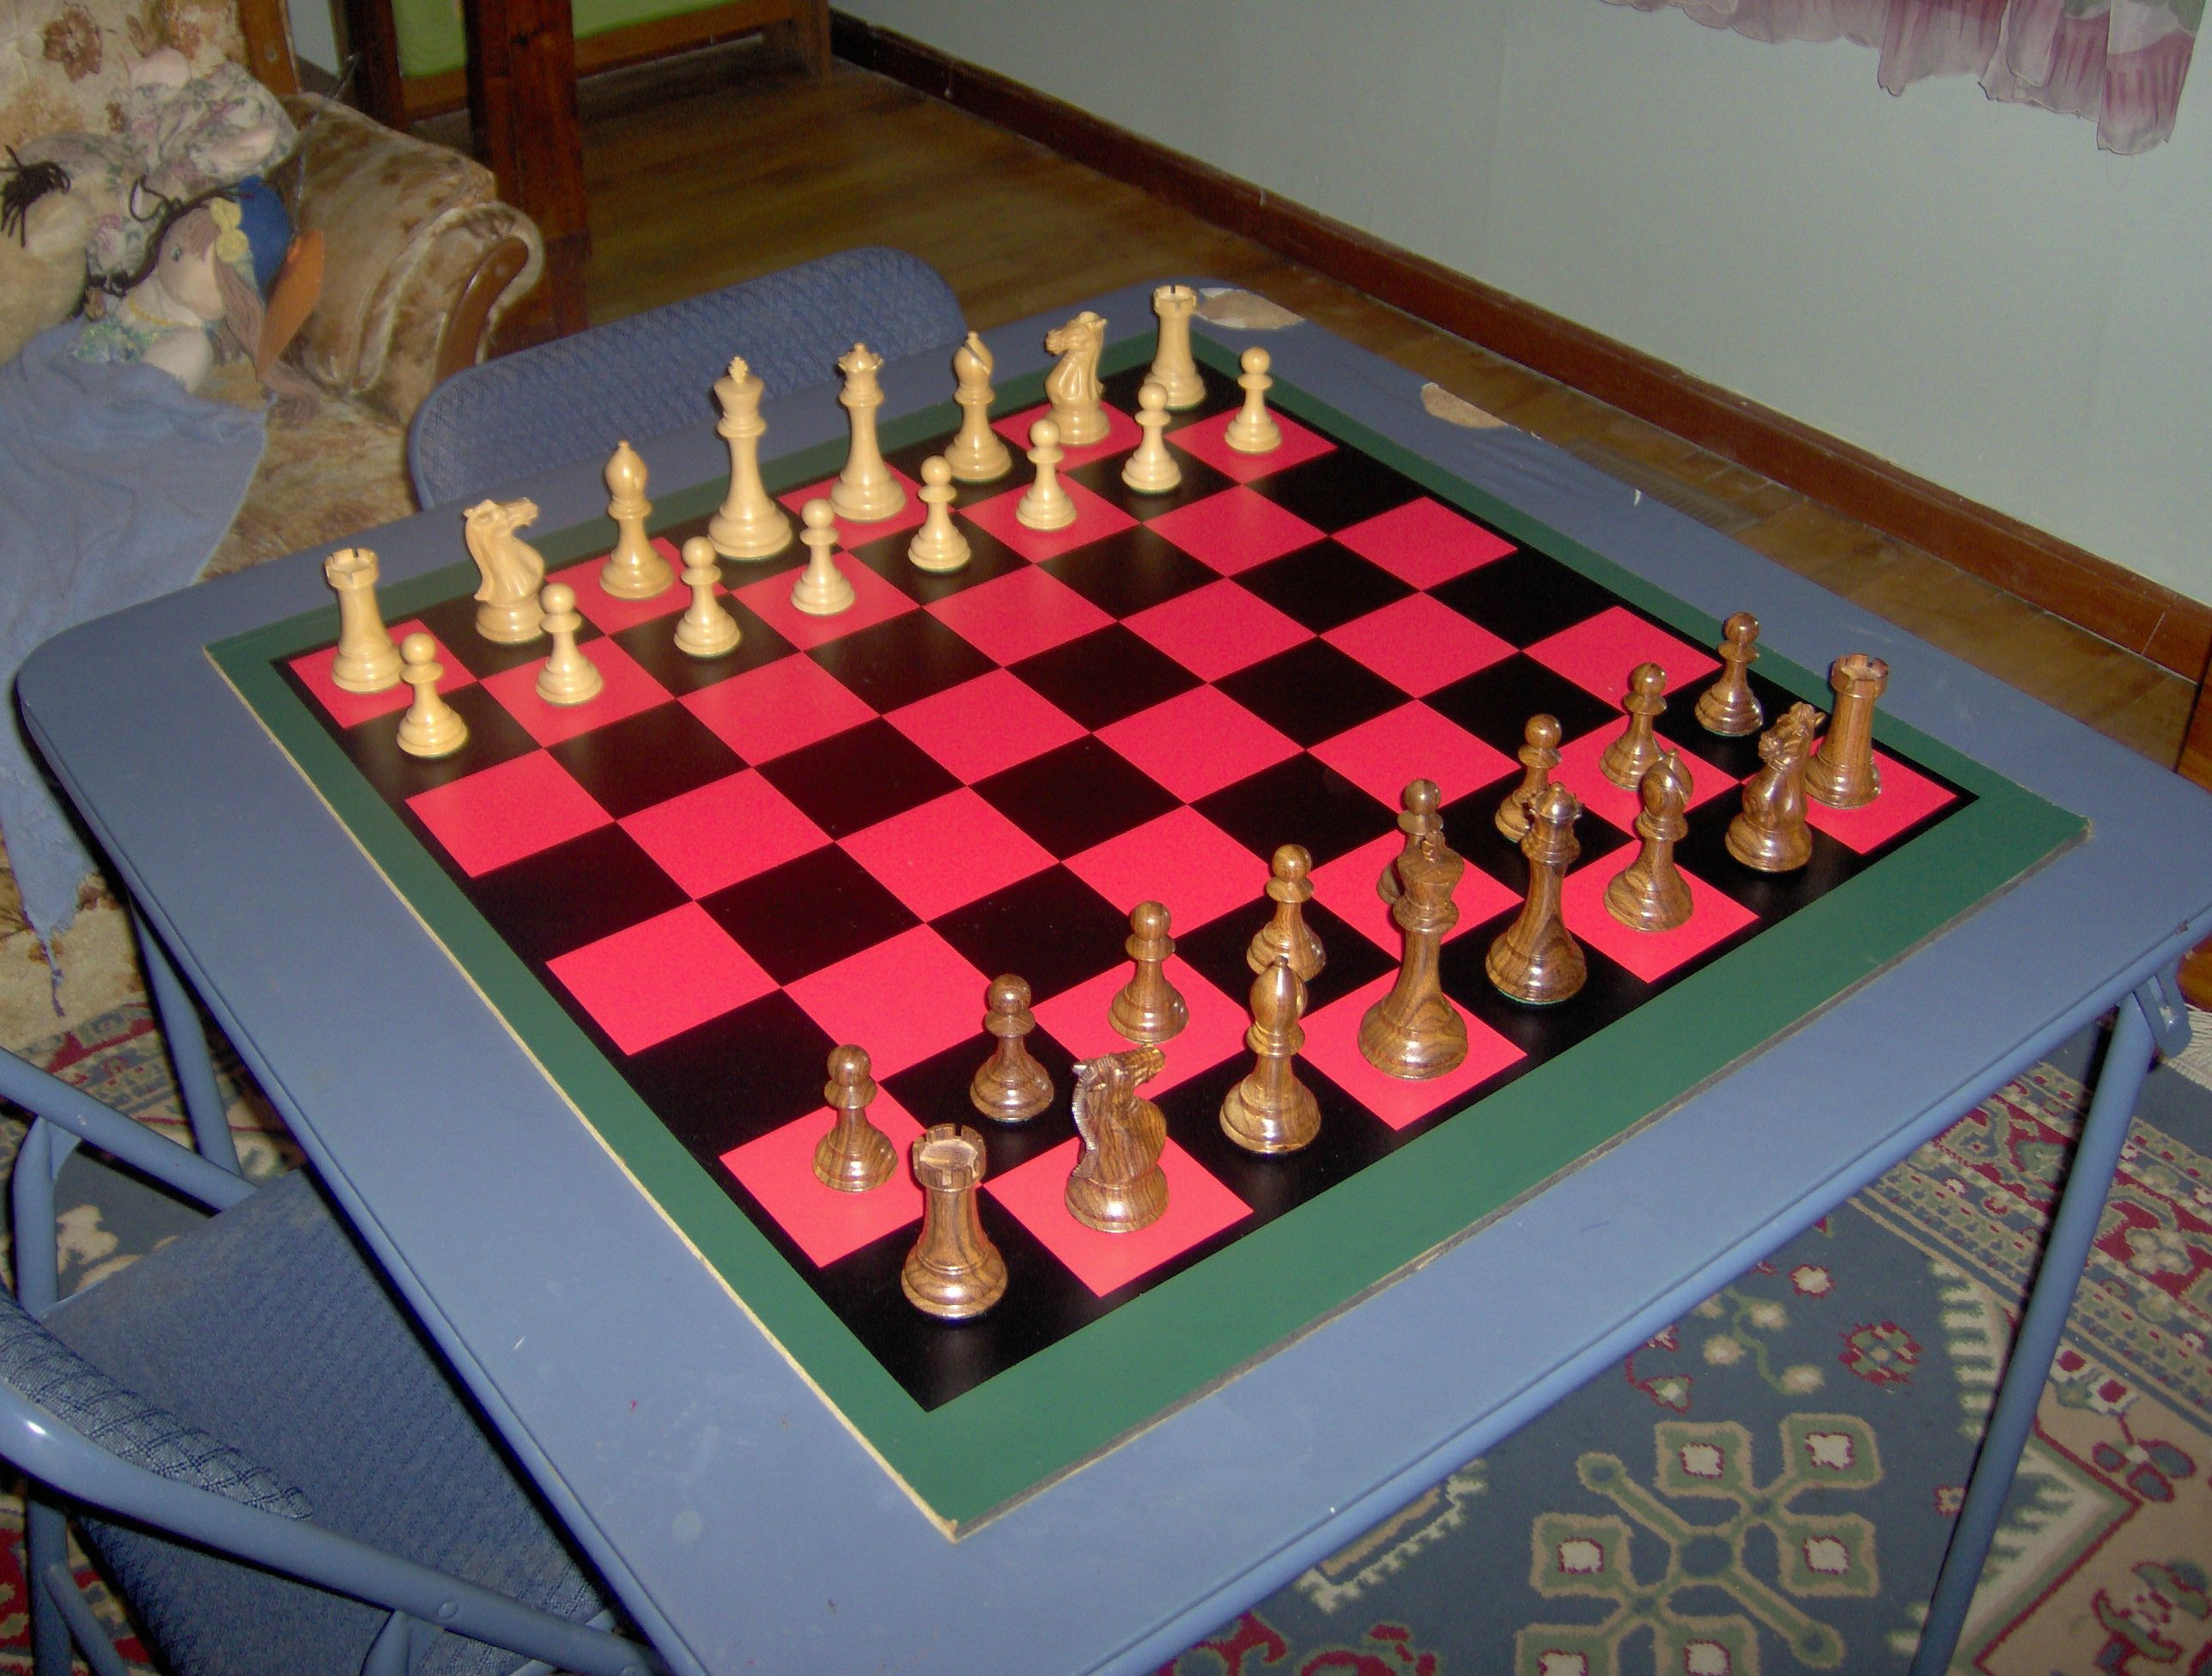 Nice Chess Boards mdf chess boards - chess forums - chess